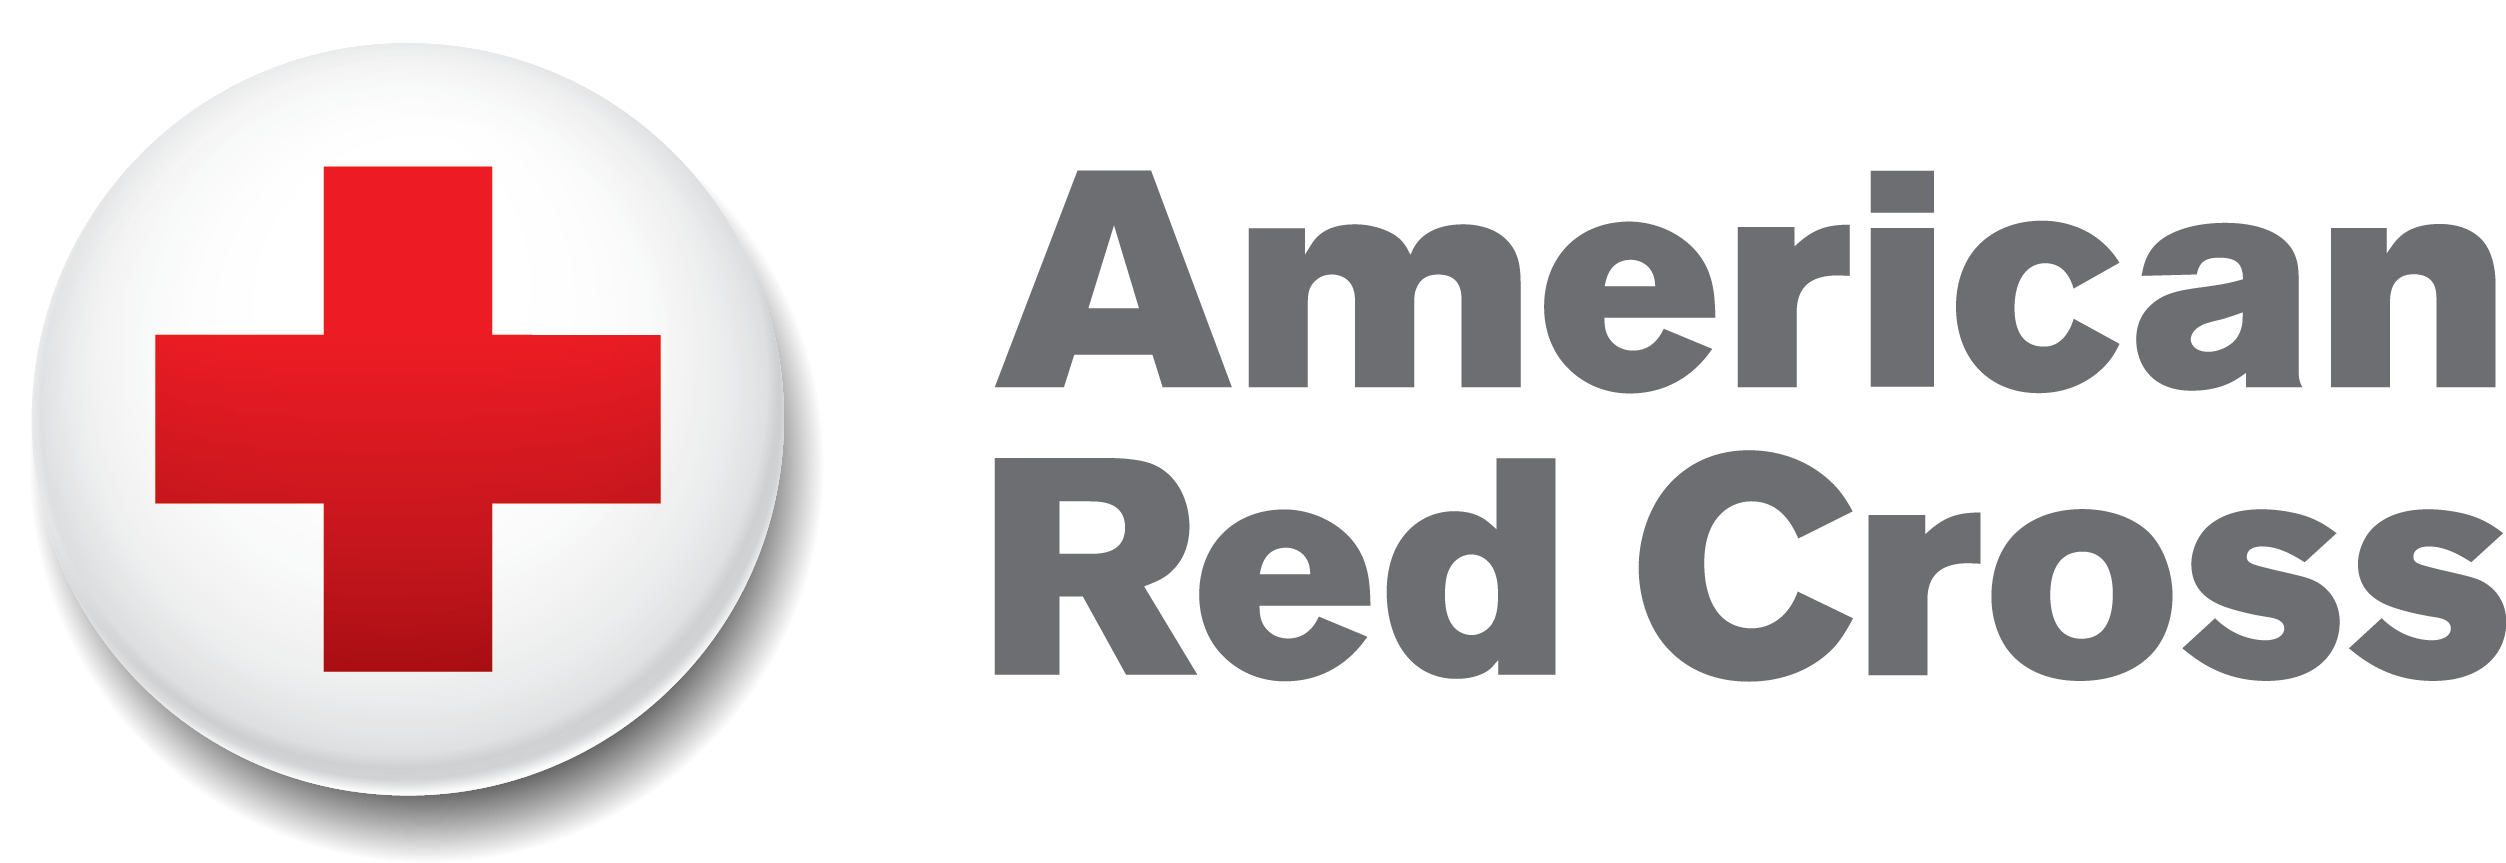 American Red Cross Logo Png - Red Cross Logo [Arc] Png Free Downloads, Logo Brand Emblems, Transparent background PNG HD thumbnail